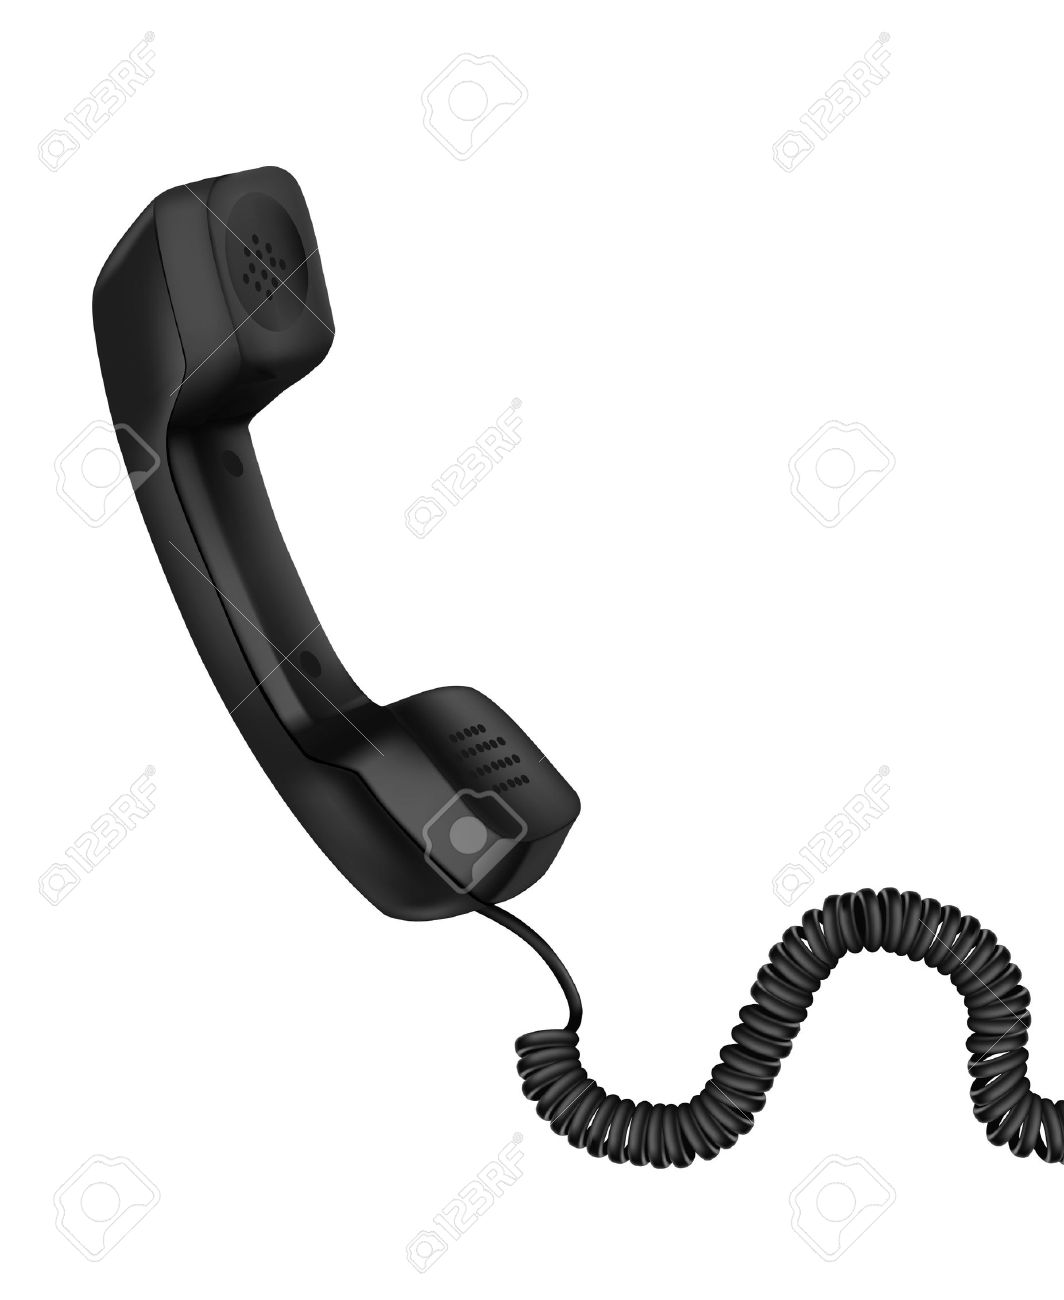 Telephone receiver clipart.